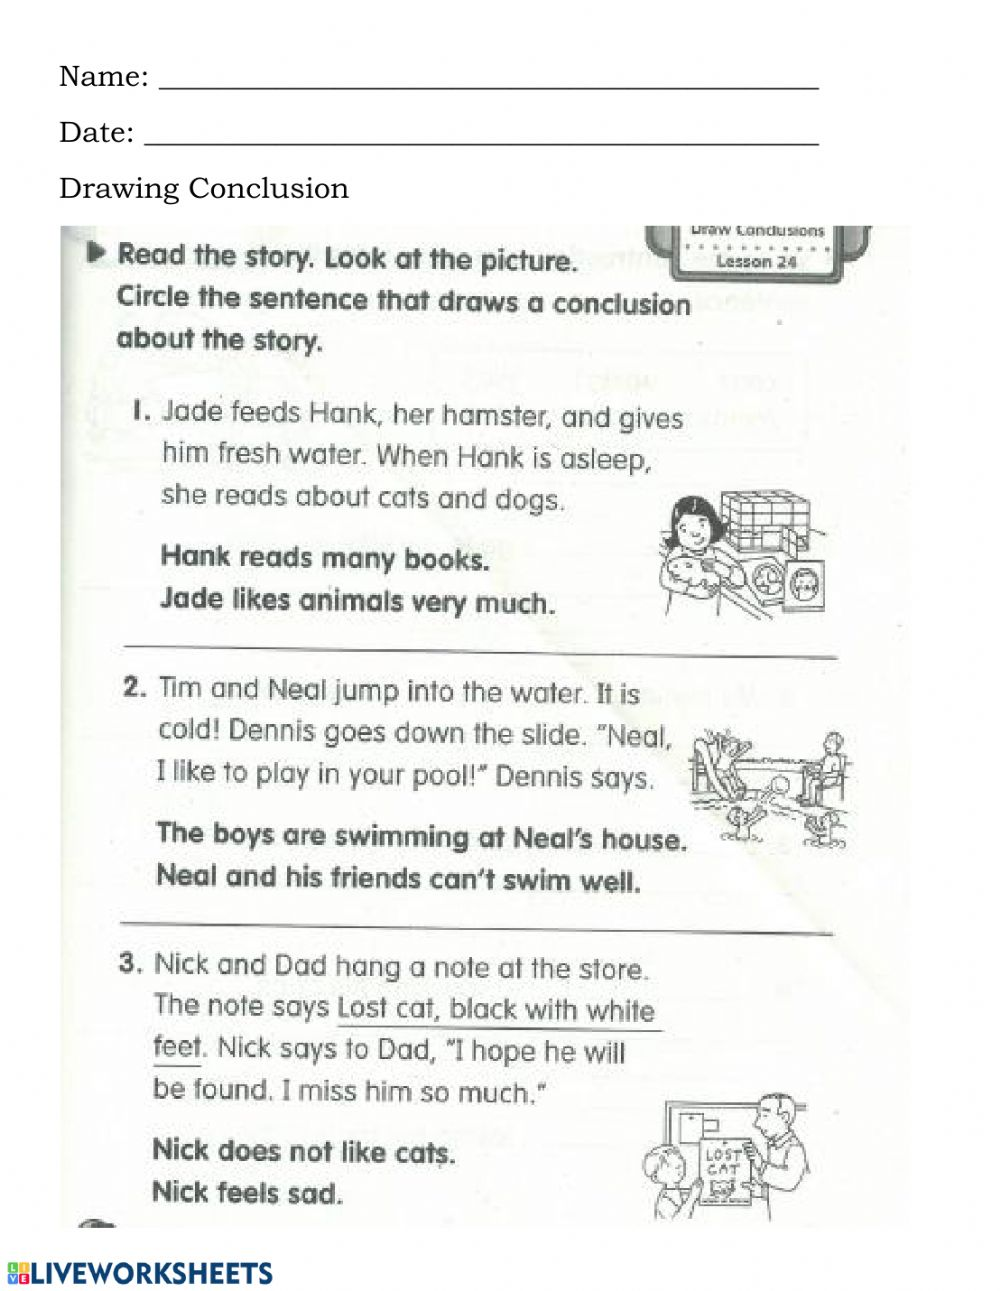 medium resolution of Drawing Conclusion worksheet